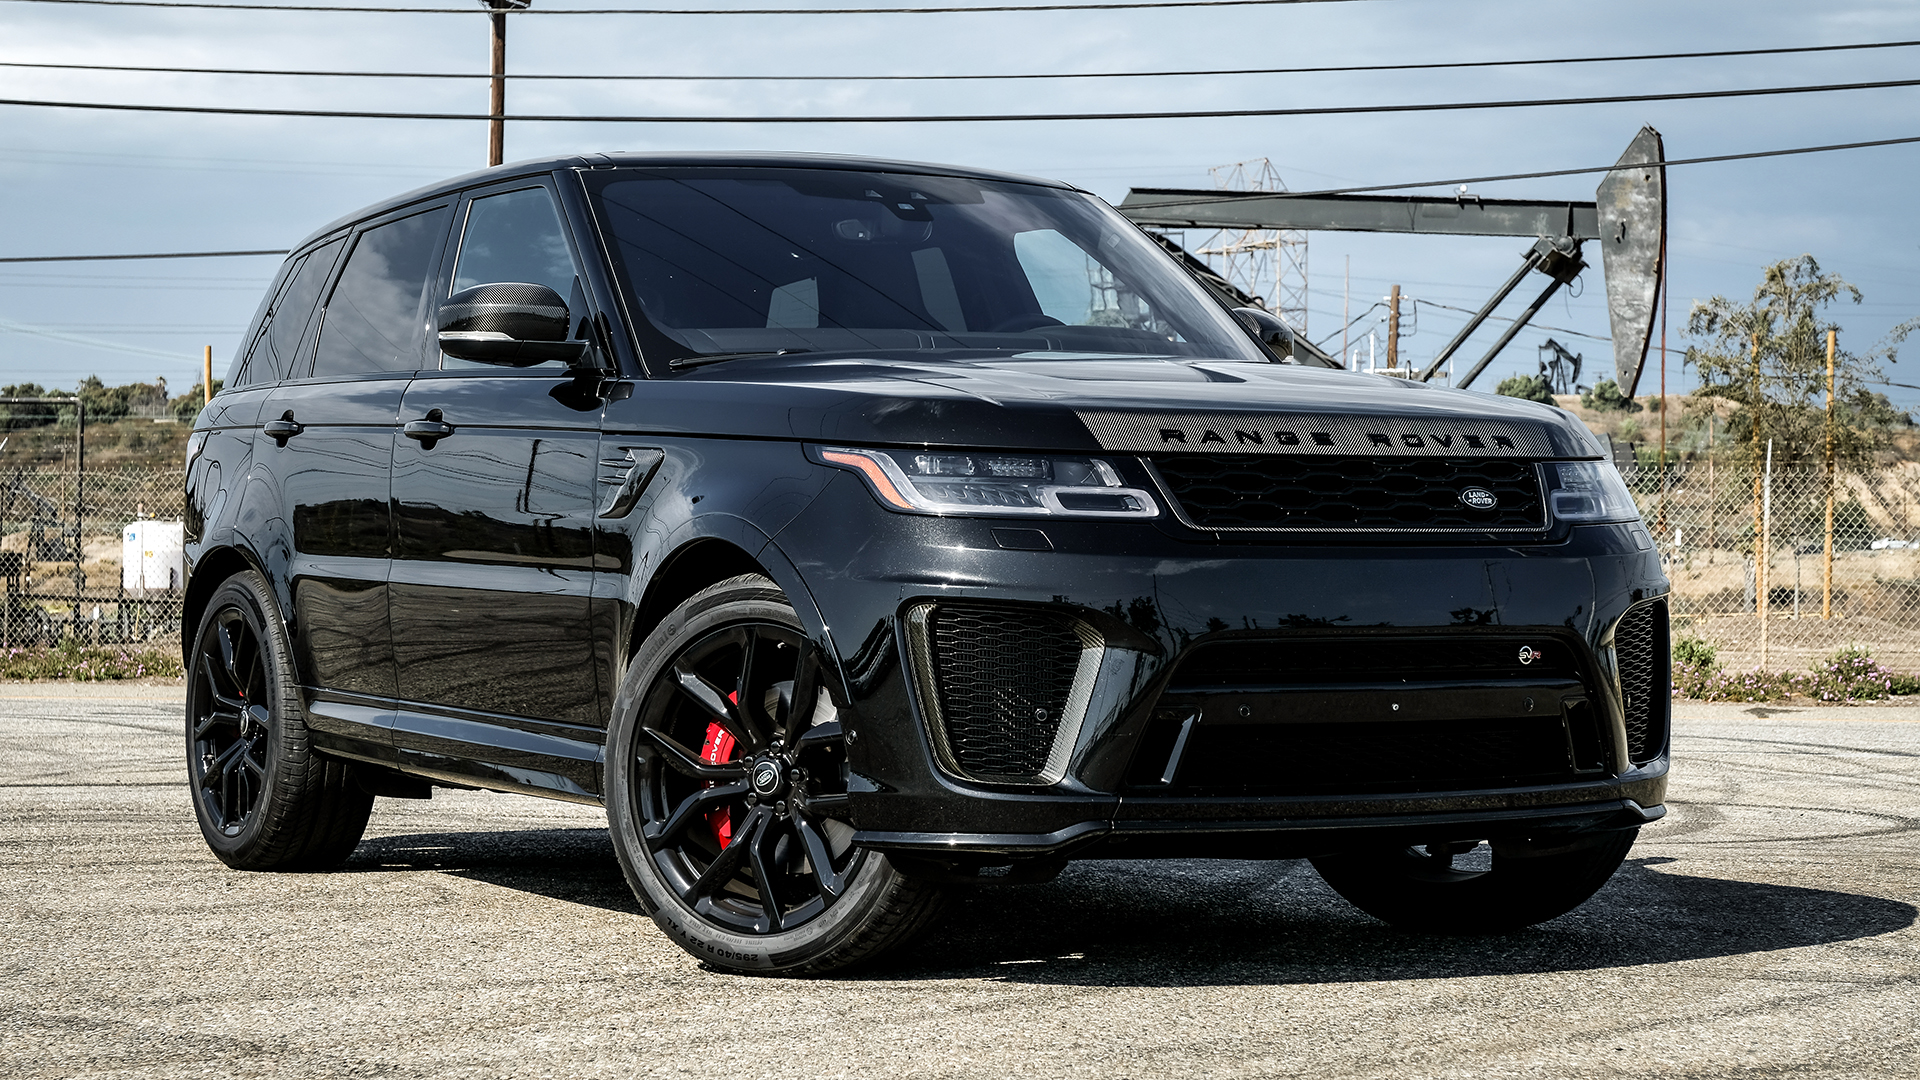 2018 Range Rover Sport SVR Review: This 575-HP Solid Wall of